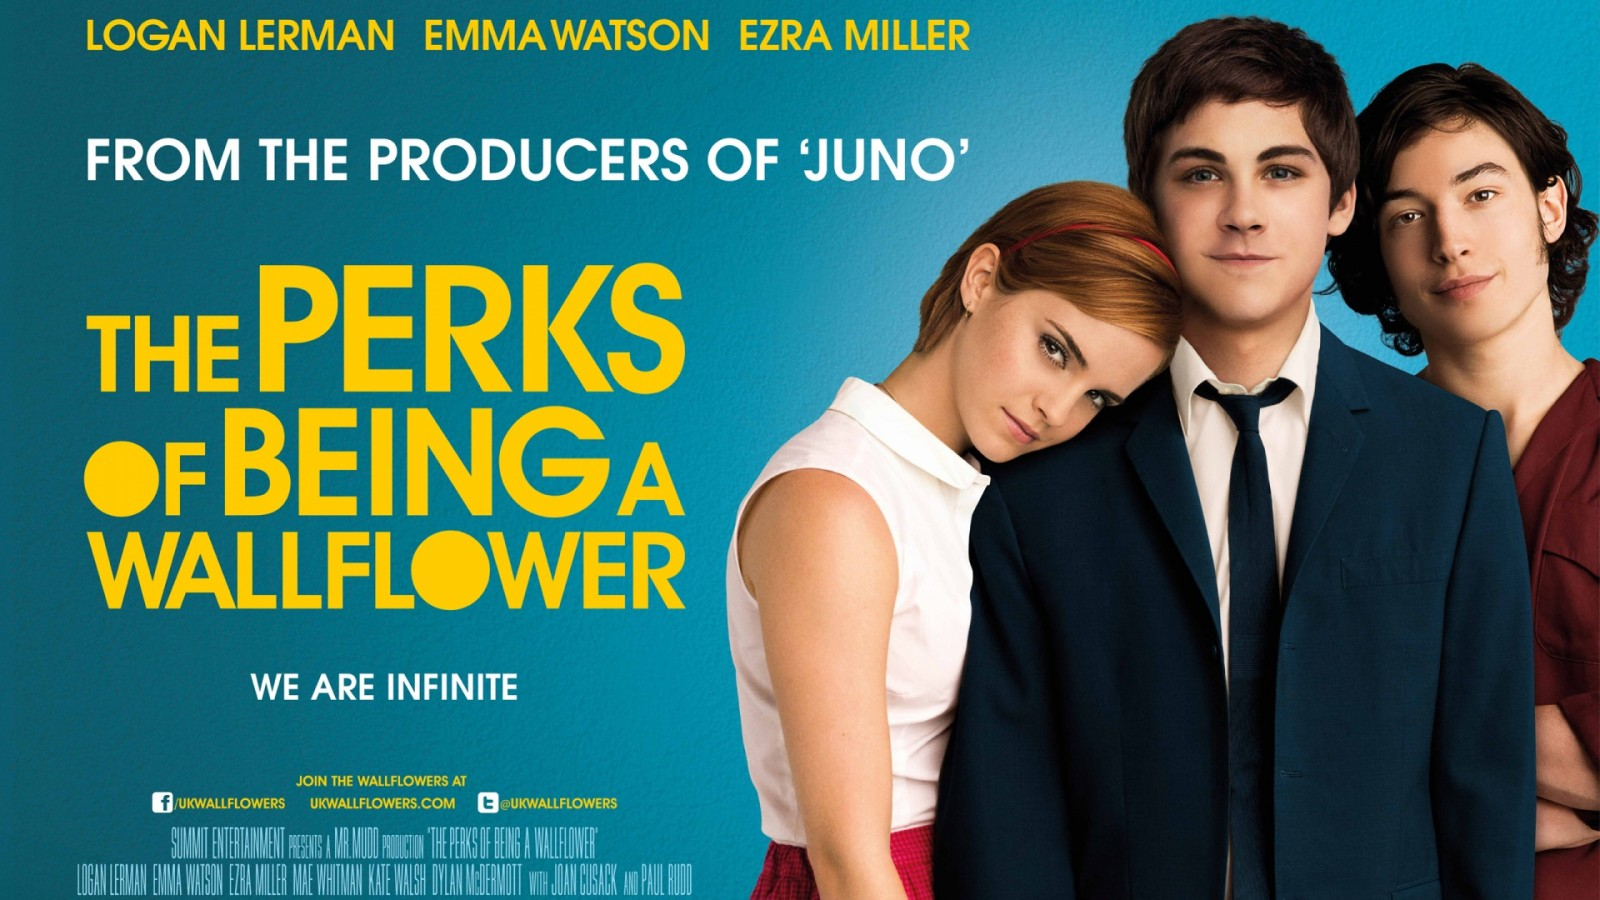 the-perks-of-being-a-wallflower-movie-posters